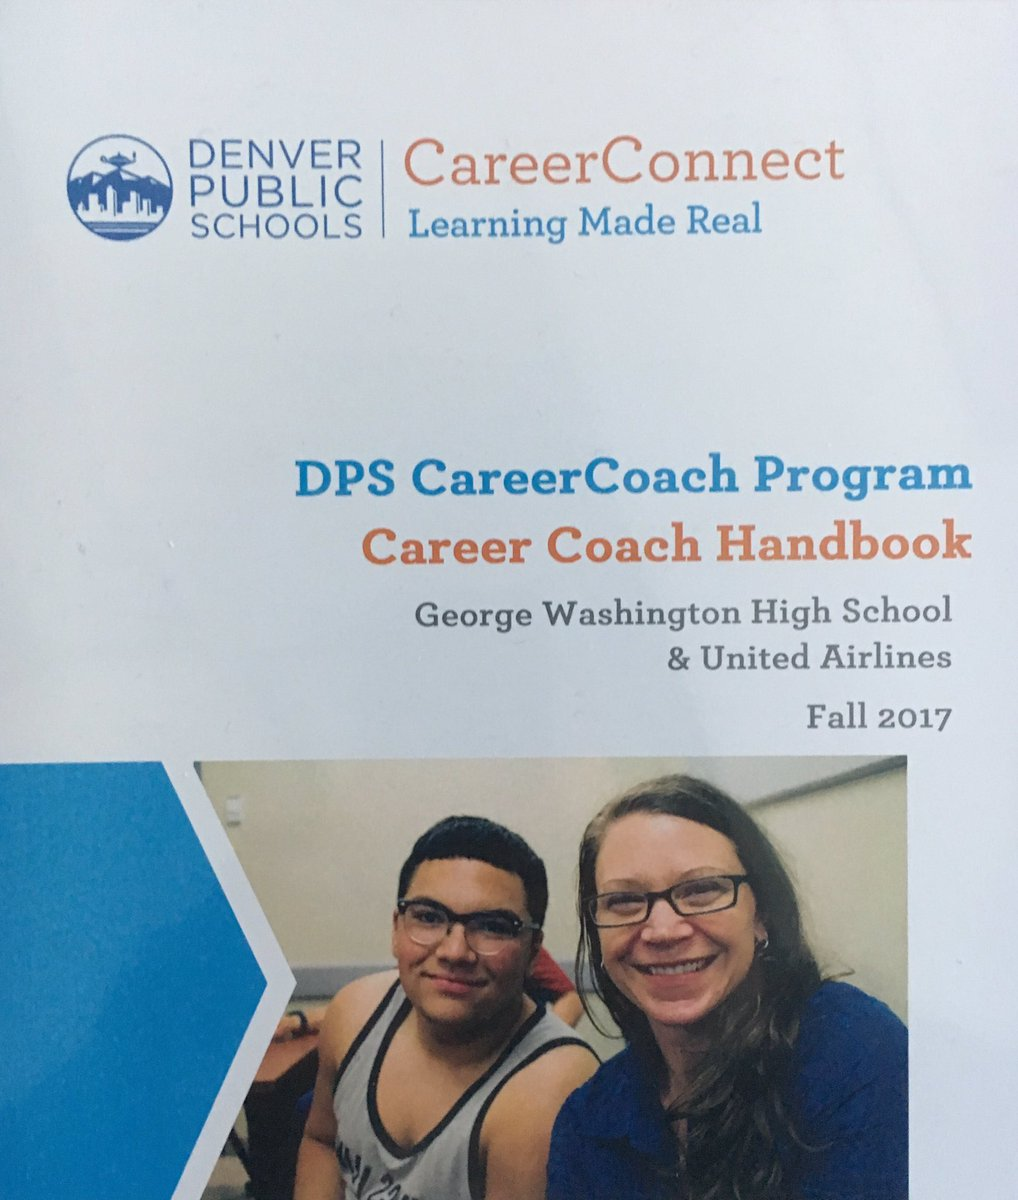 DEN United partnering with Denver Public Schools in the Career Connect Program! Excited to be a Career Coach! @Steveatunited @AllisonBudd2